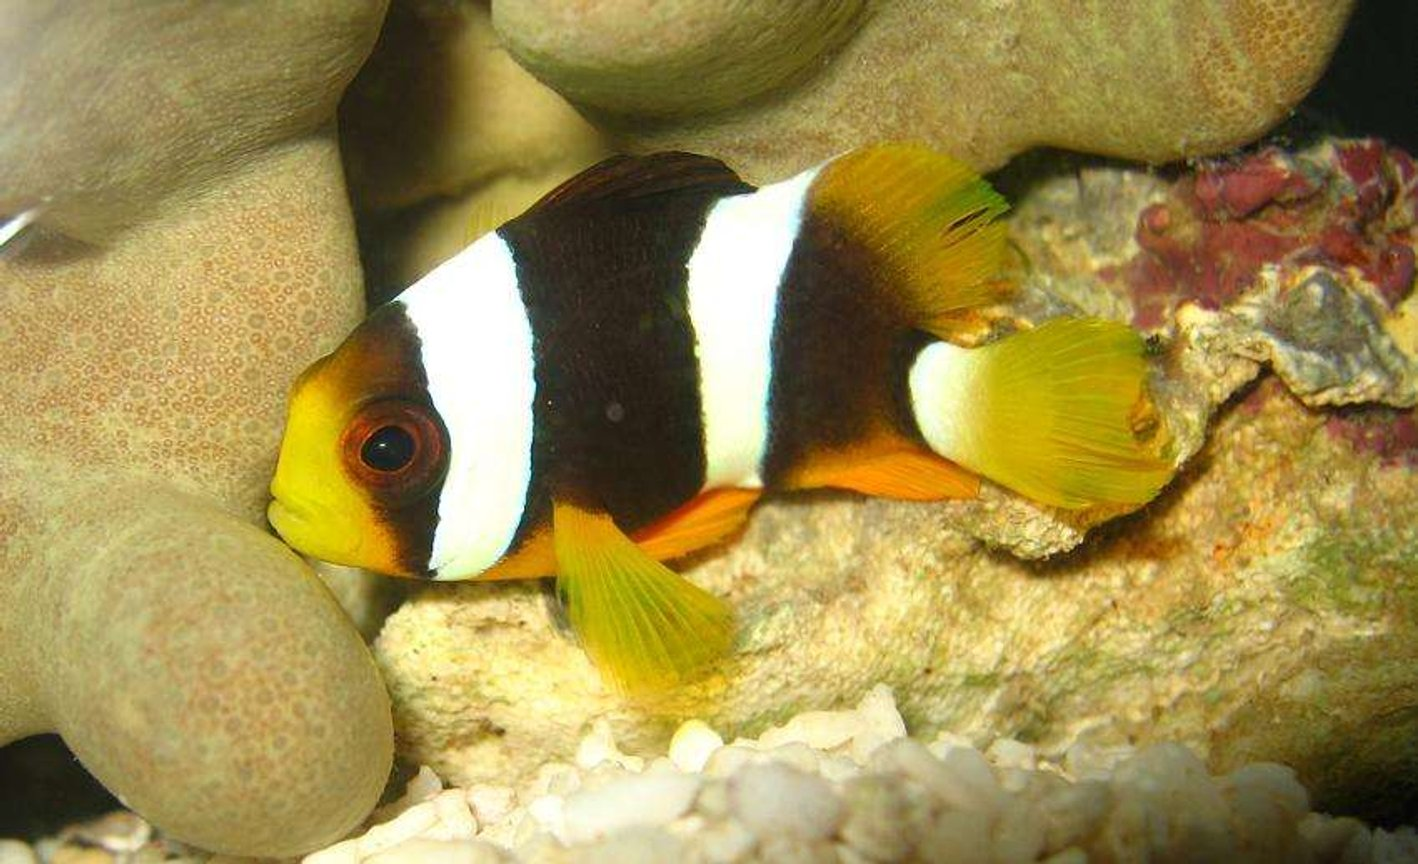 saltwater fish - amphiprion clarkii - clarkii clownfish stocking in 4 gallons tank - Clark's Clownfish (Amphiprion Clarkii)